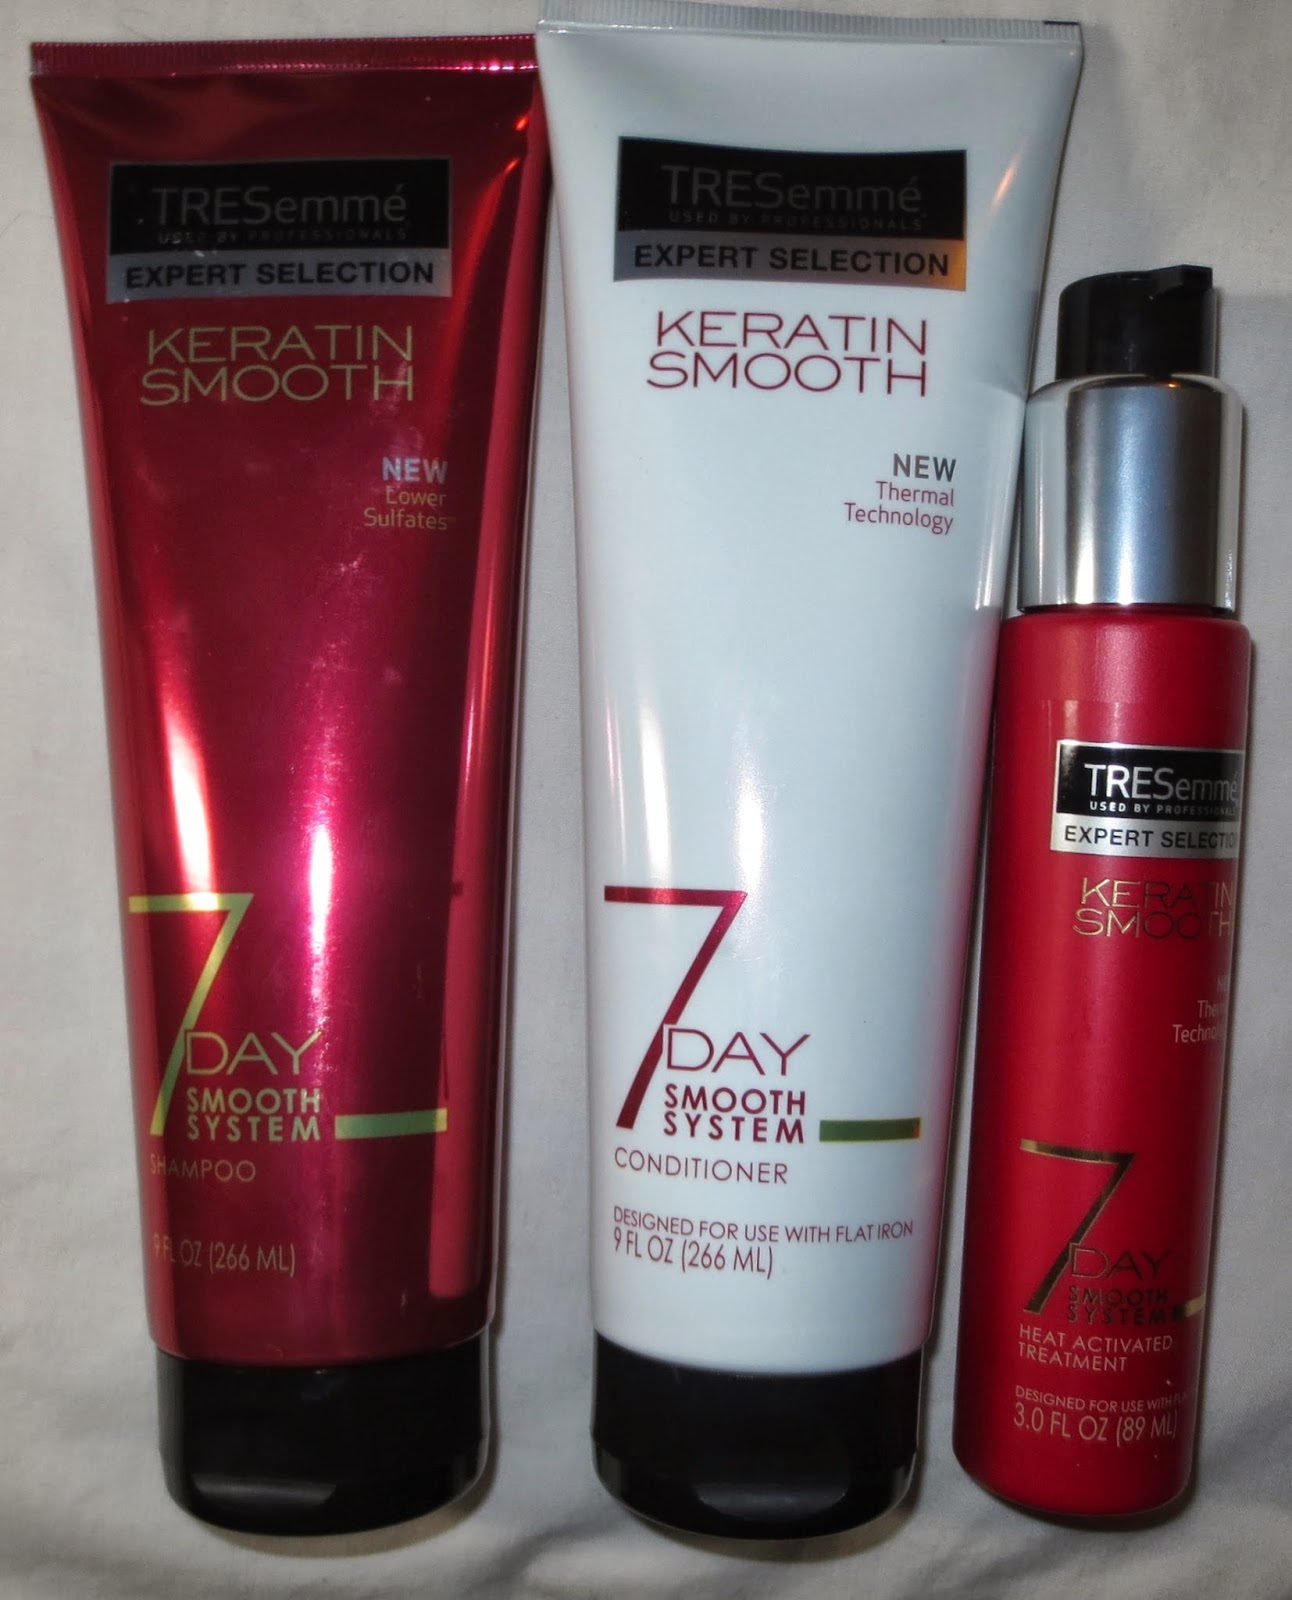 TRESemmé 7 Day Keratin Smooth System